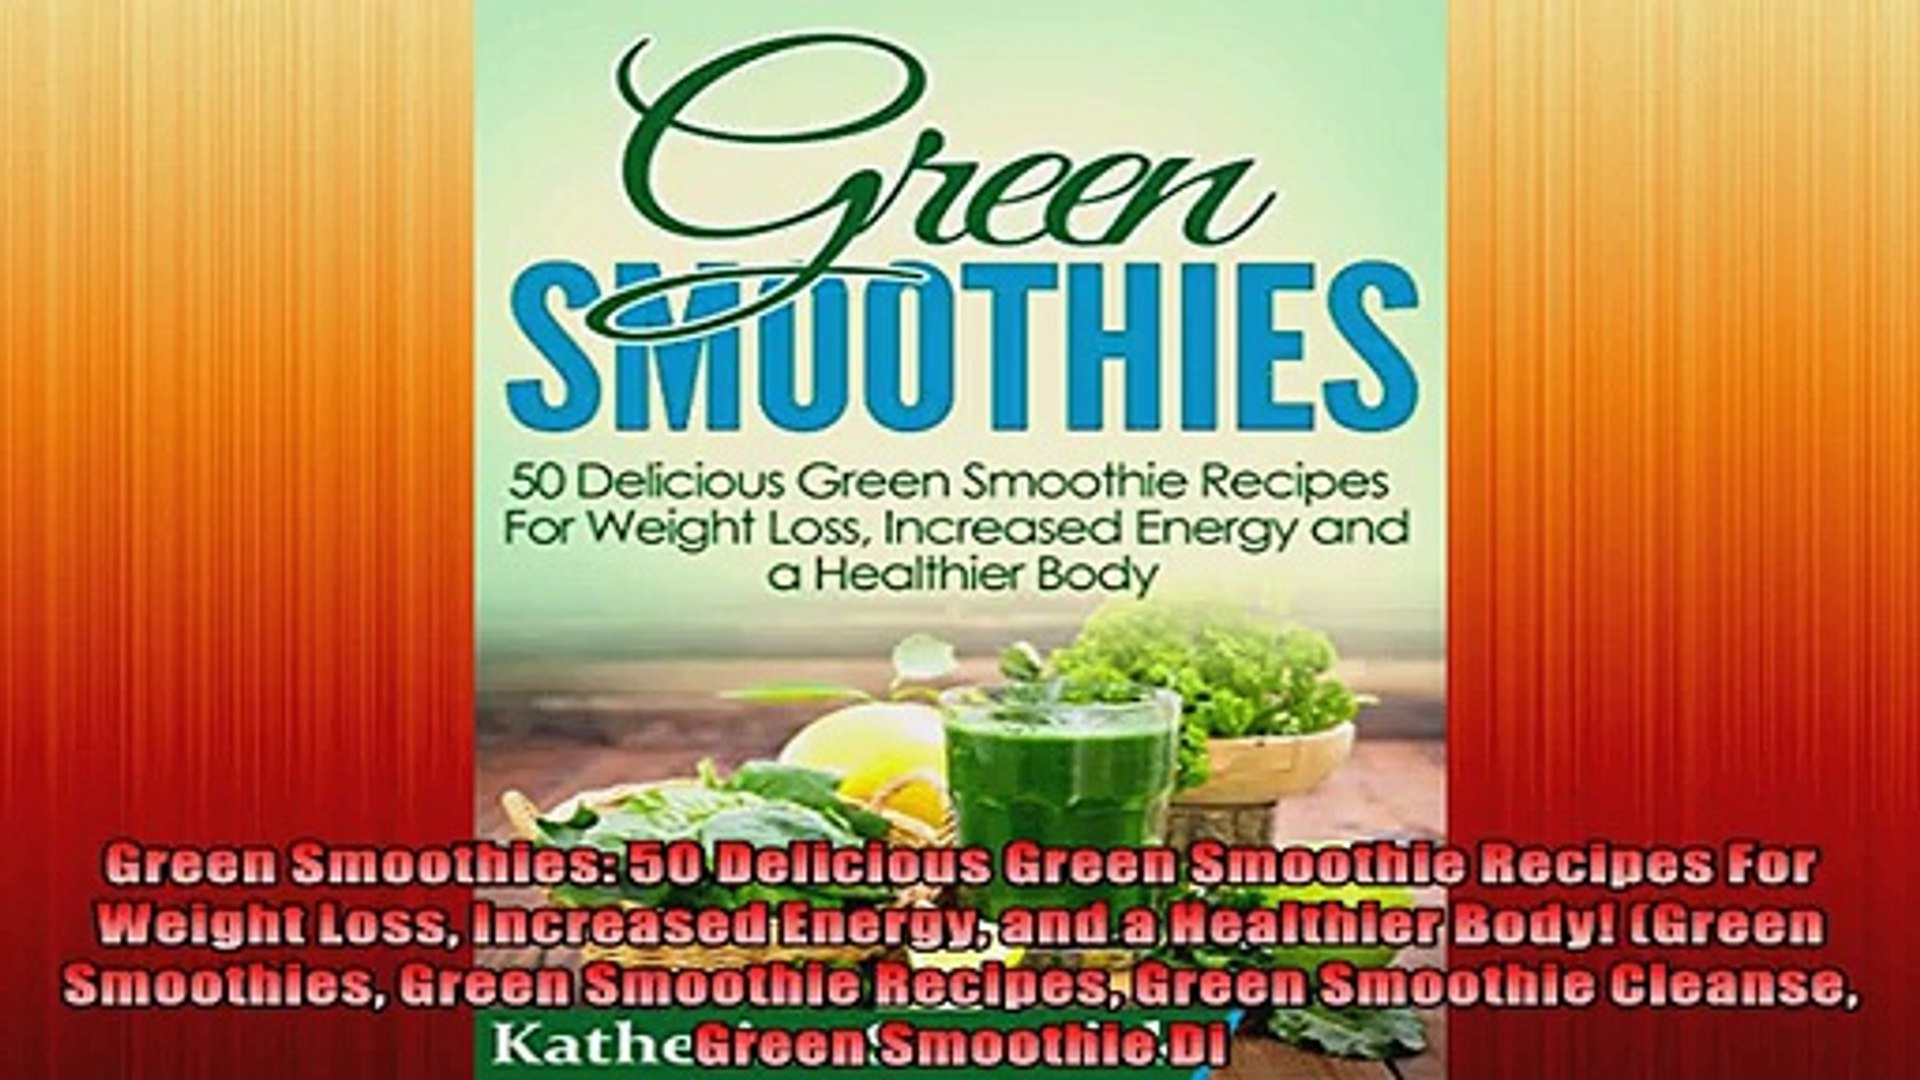 Green Smoothies 50 Delicious Green Smoothie Recipes For